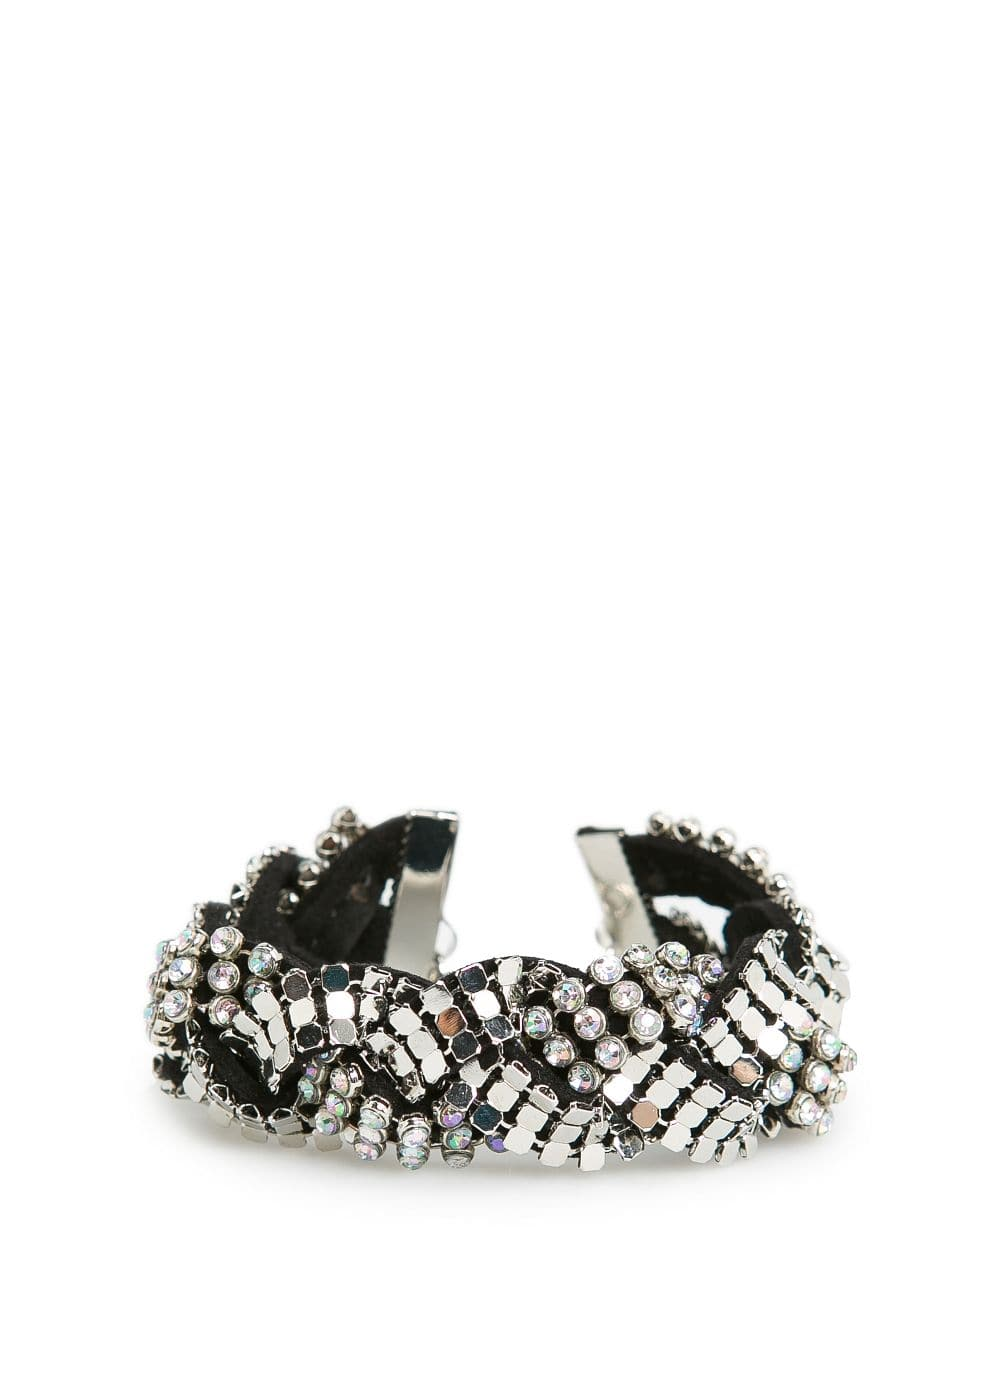 Braided strass bracelet